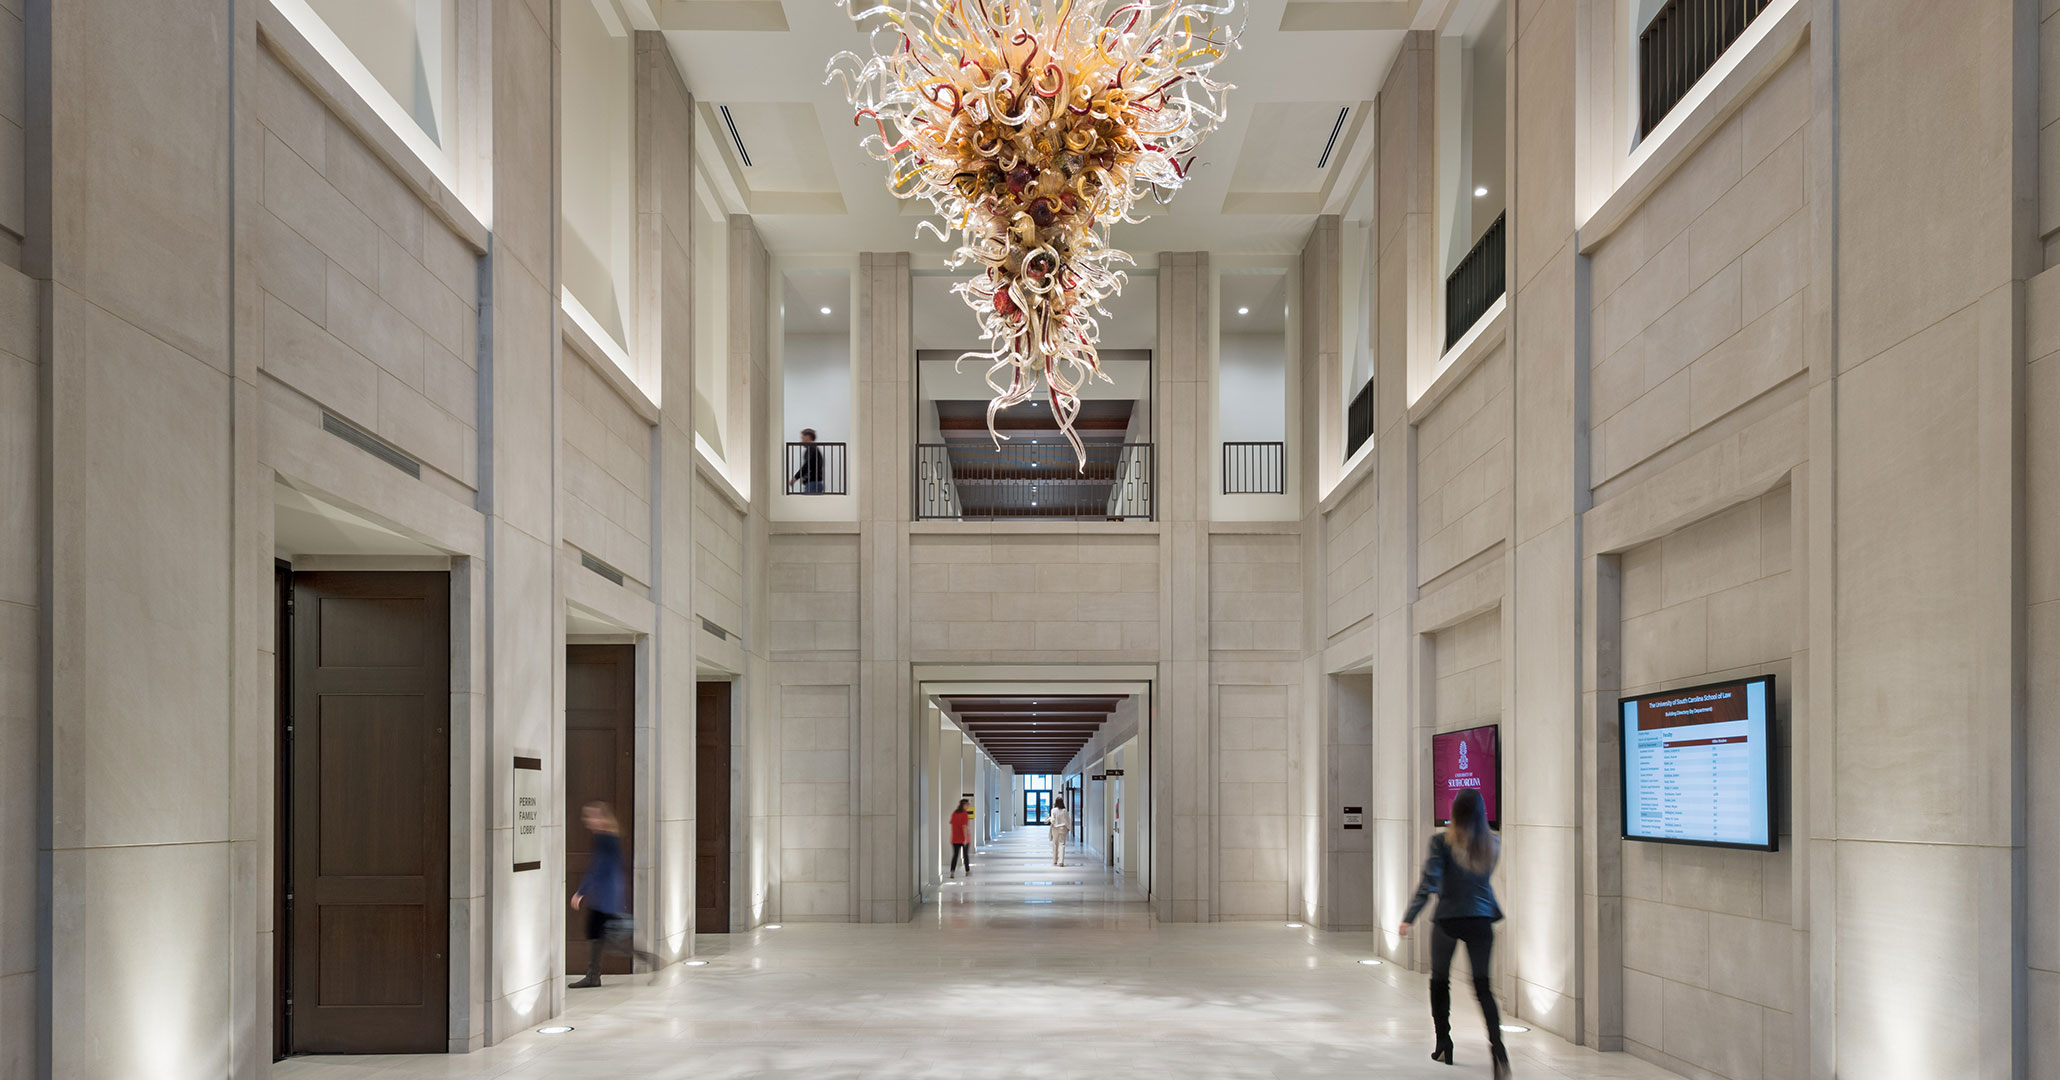 Boudreaux architects designed the new Law School with a glass sculpture made by Chihuly.